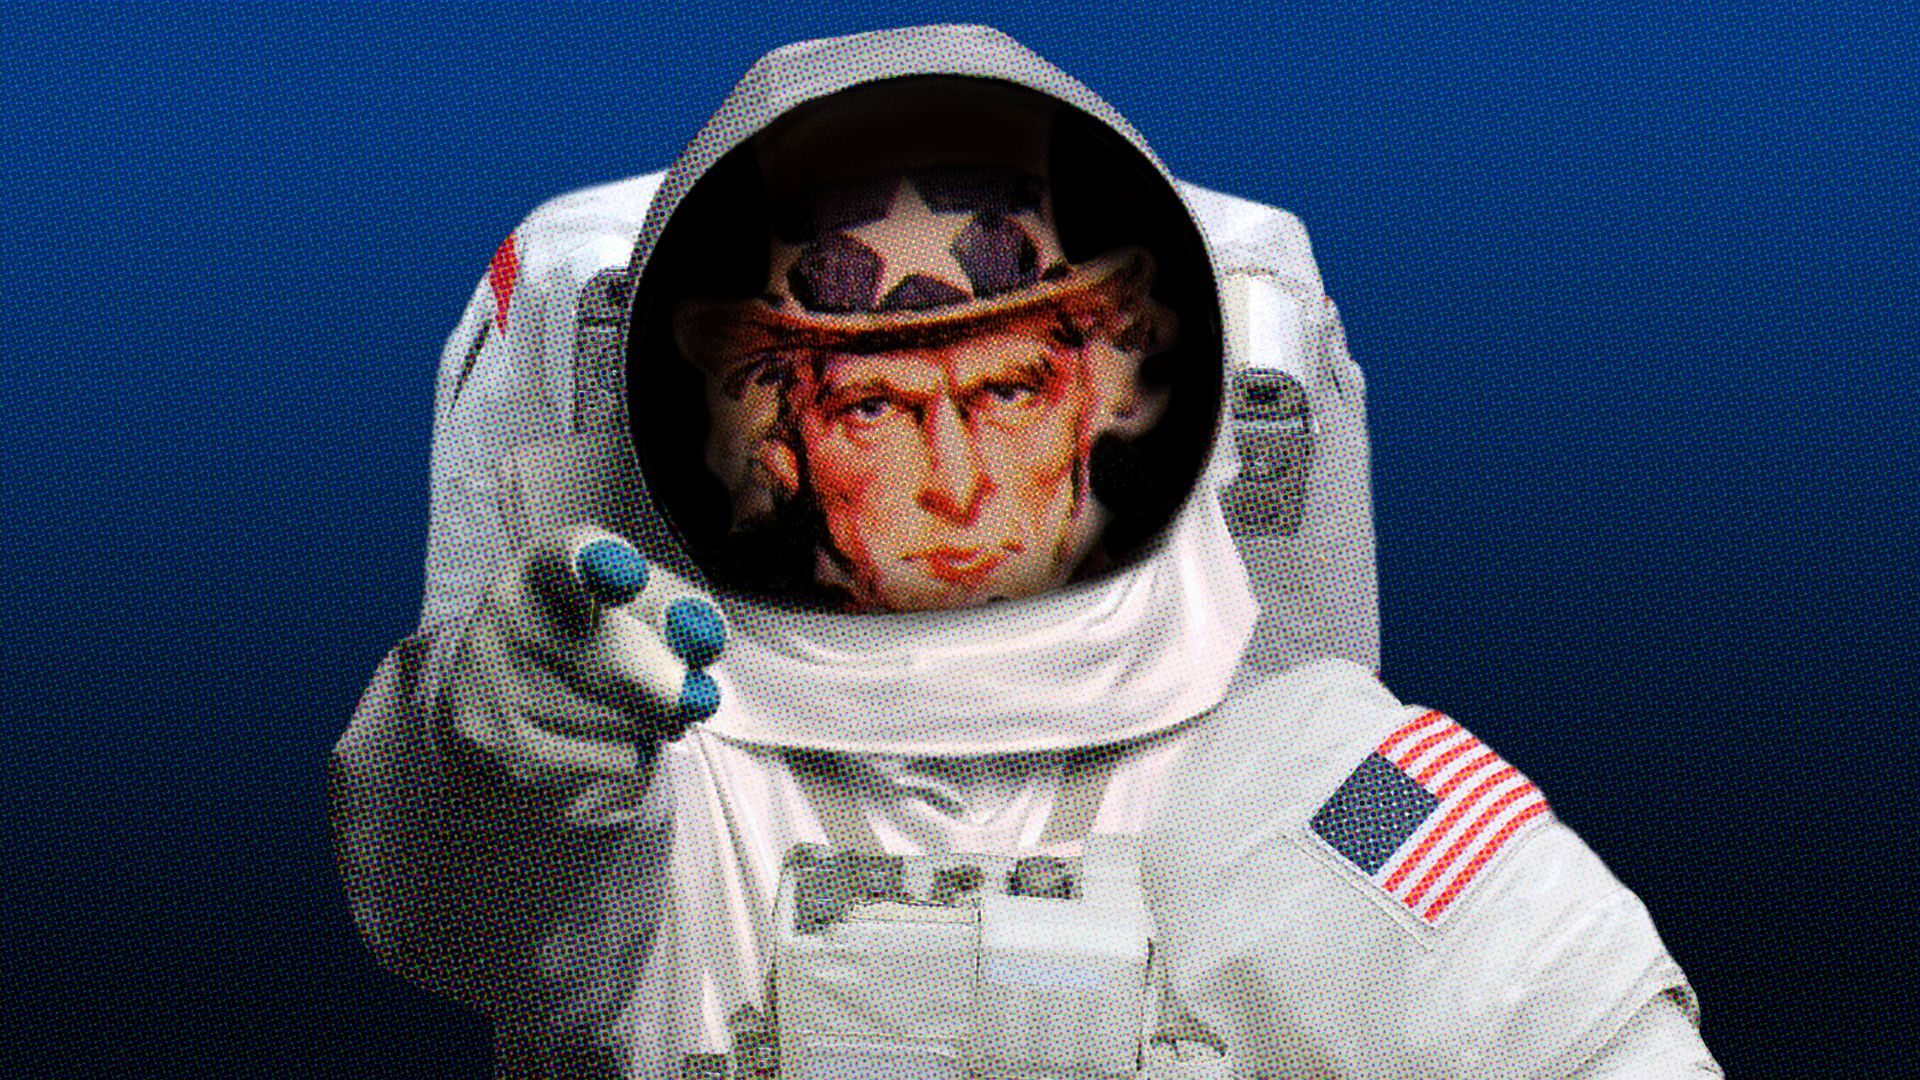 Illustration of Uncle Sam in spacesuit.